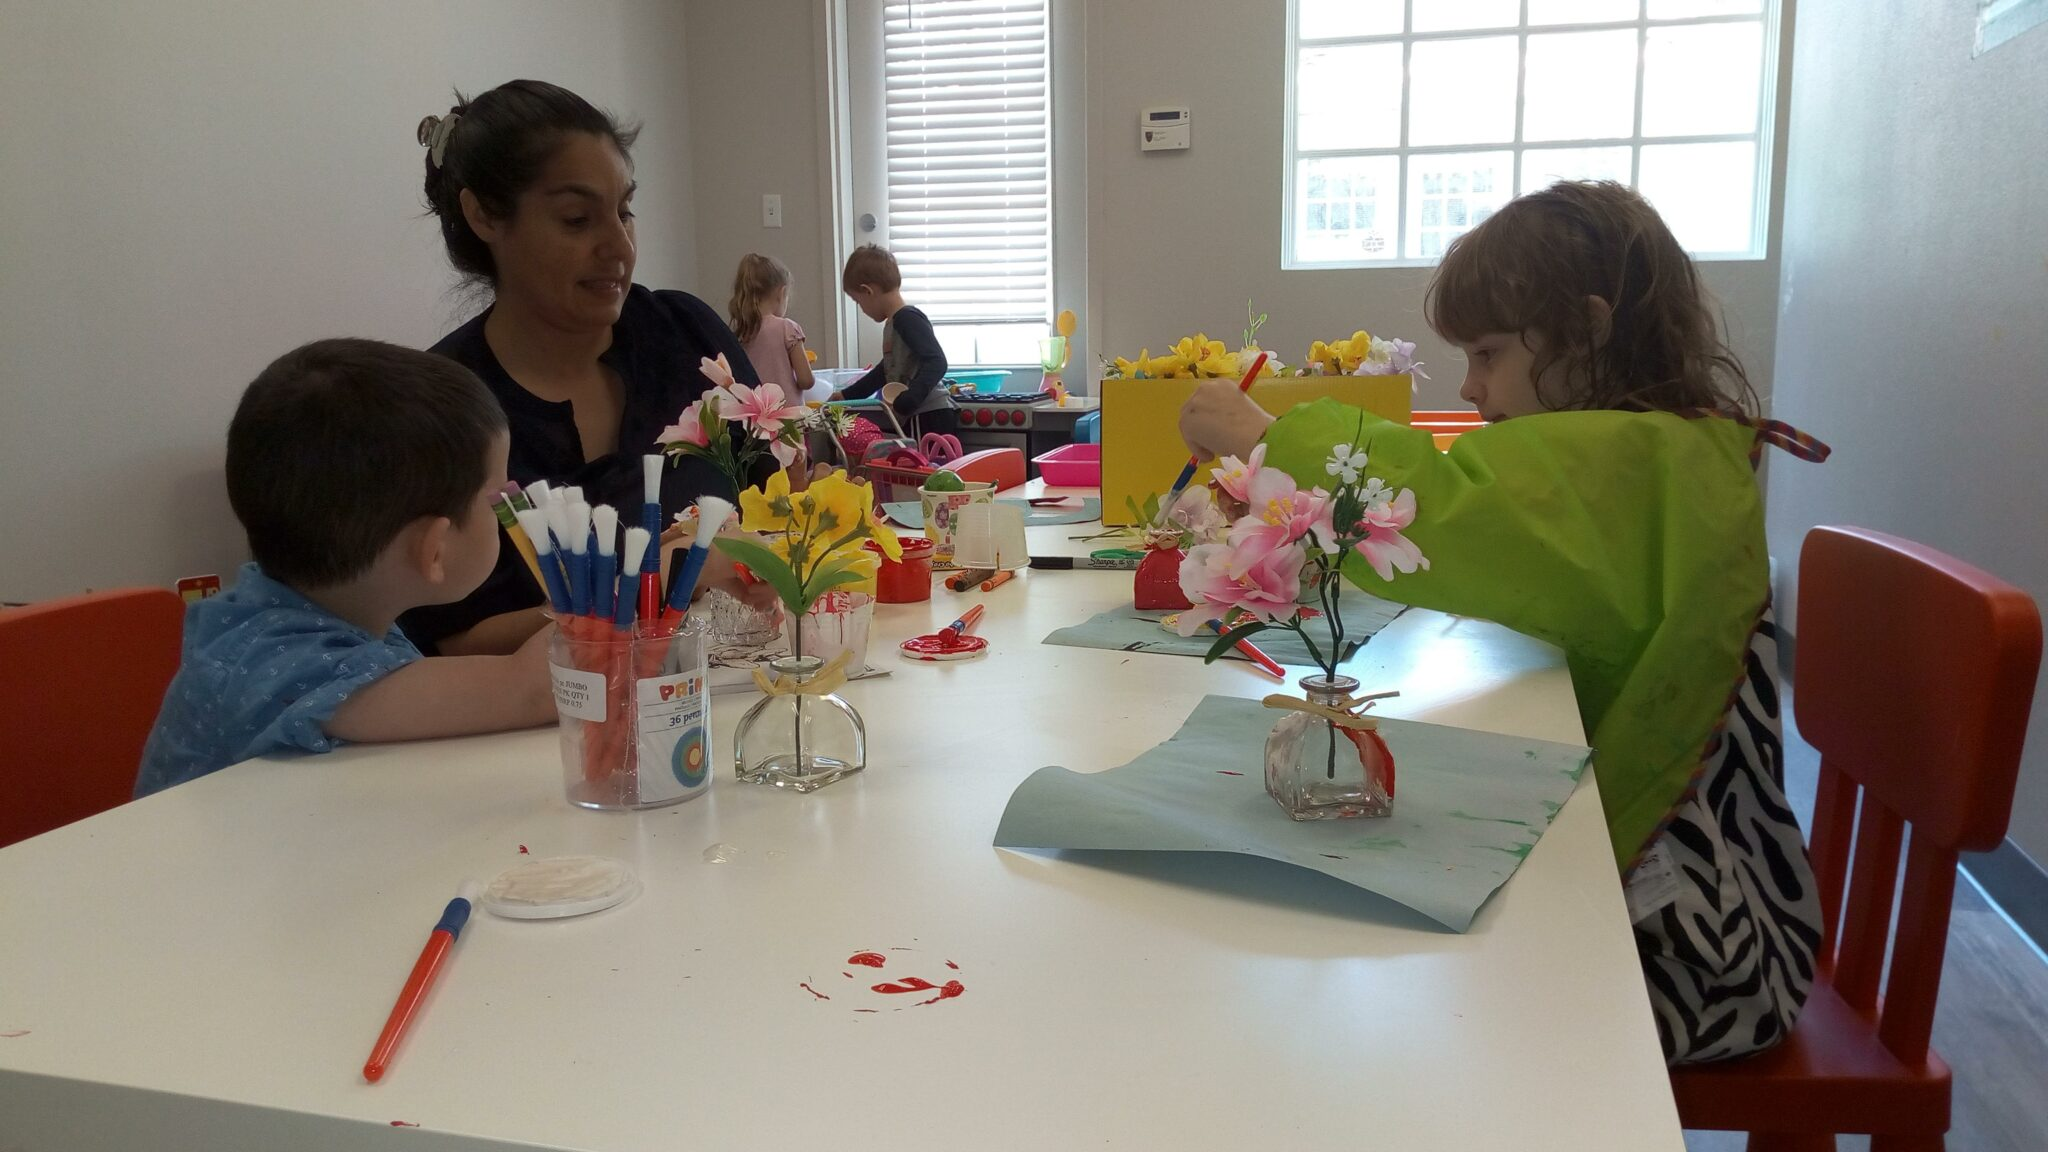 Arts and crafts in the Imagination Station